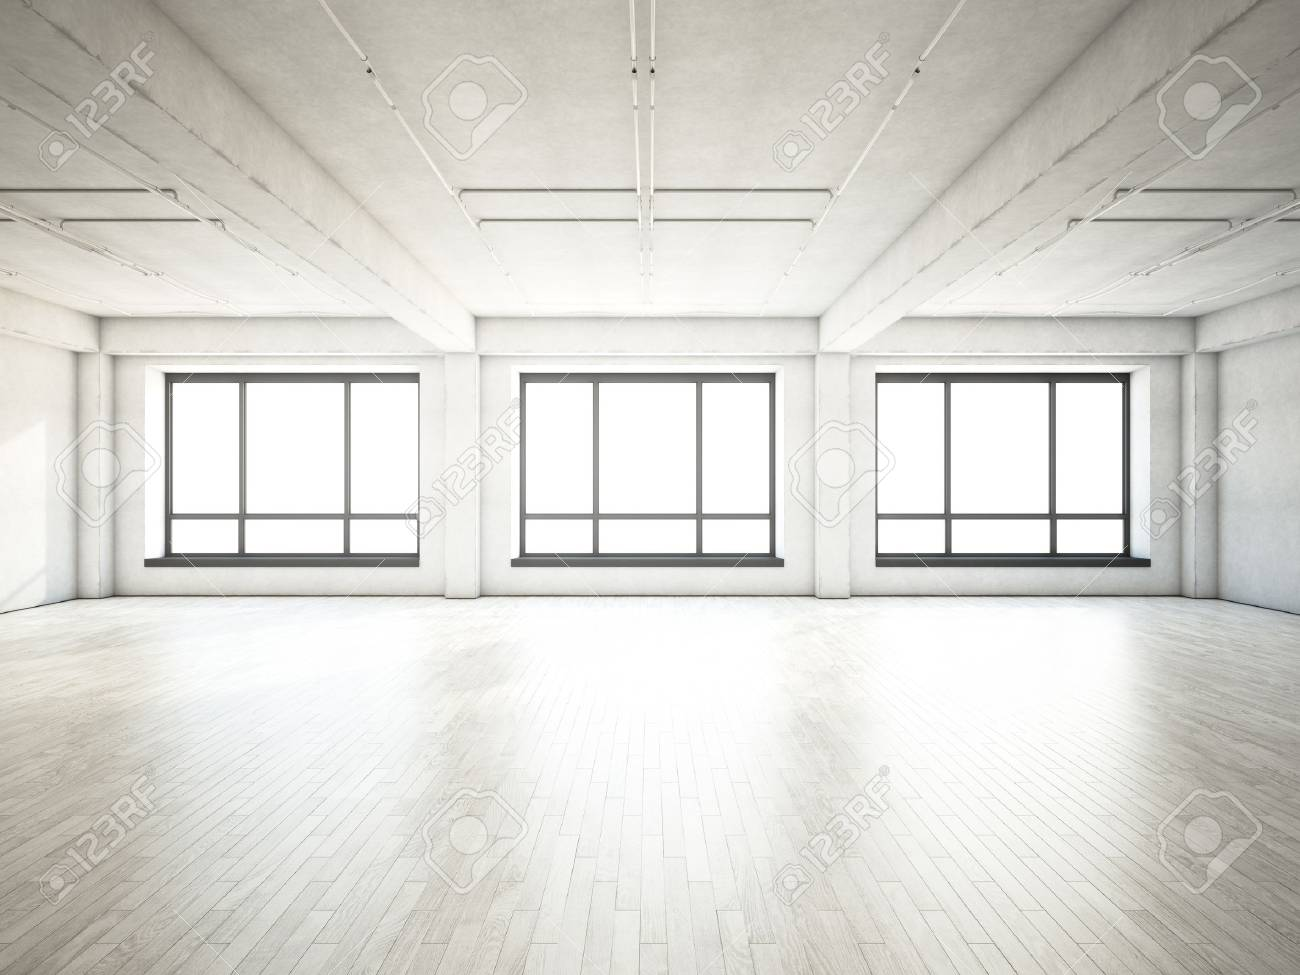 Empty living room with large windows can be as background stock - Empty Living Room With Large Windows Can Be As Background Stock Studio Wall Background White Download